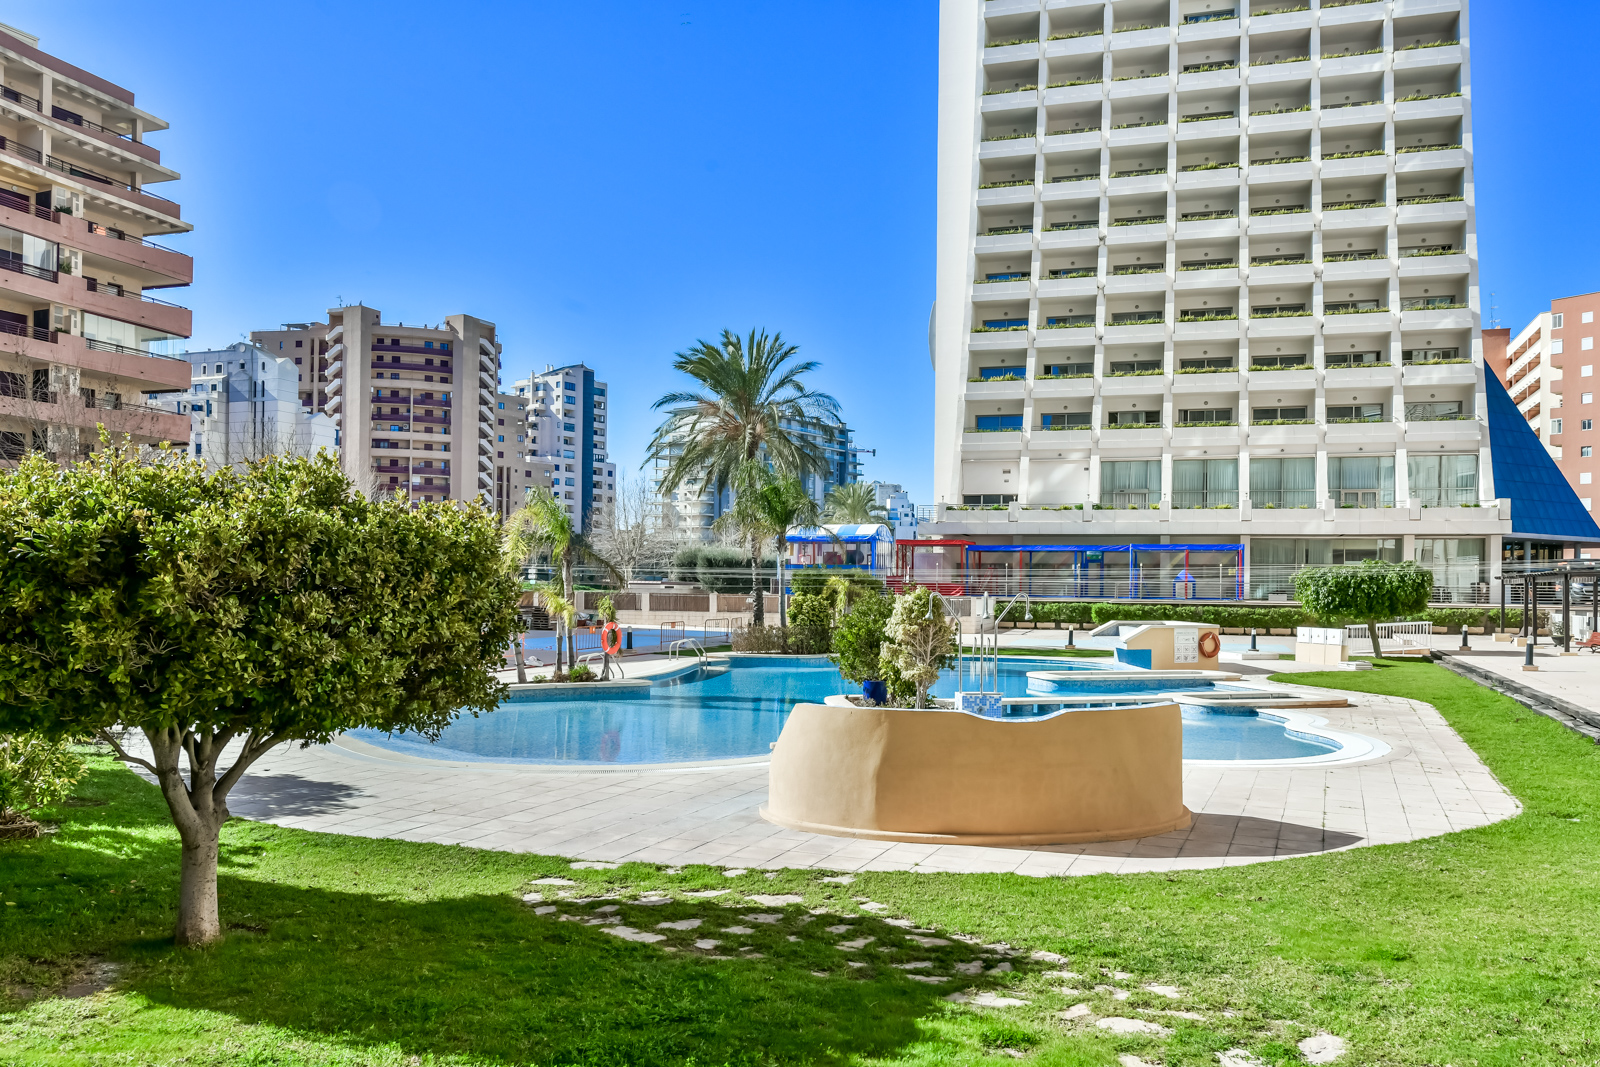 Apartamento apolo xvi 2 4 19, Apartment  with communal pool in Calpe, on the Costa Blanca, Spain for 4 persons...